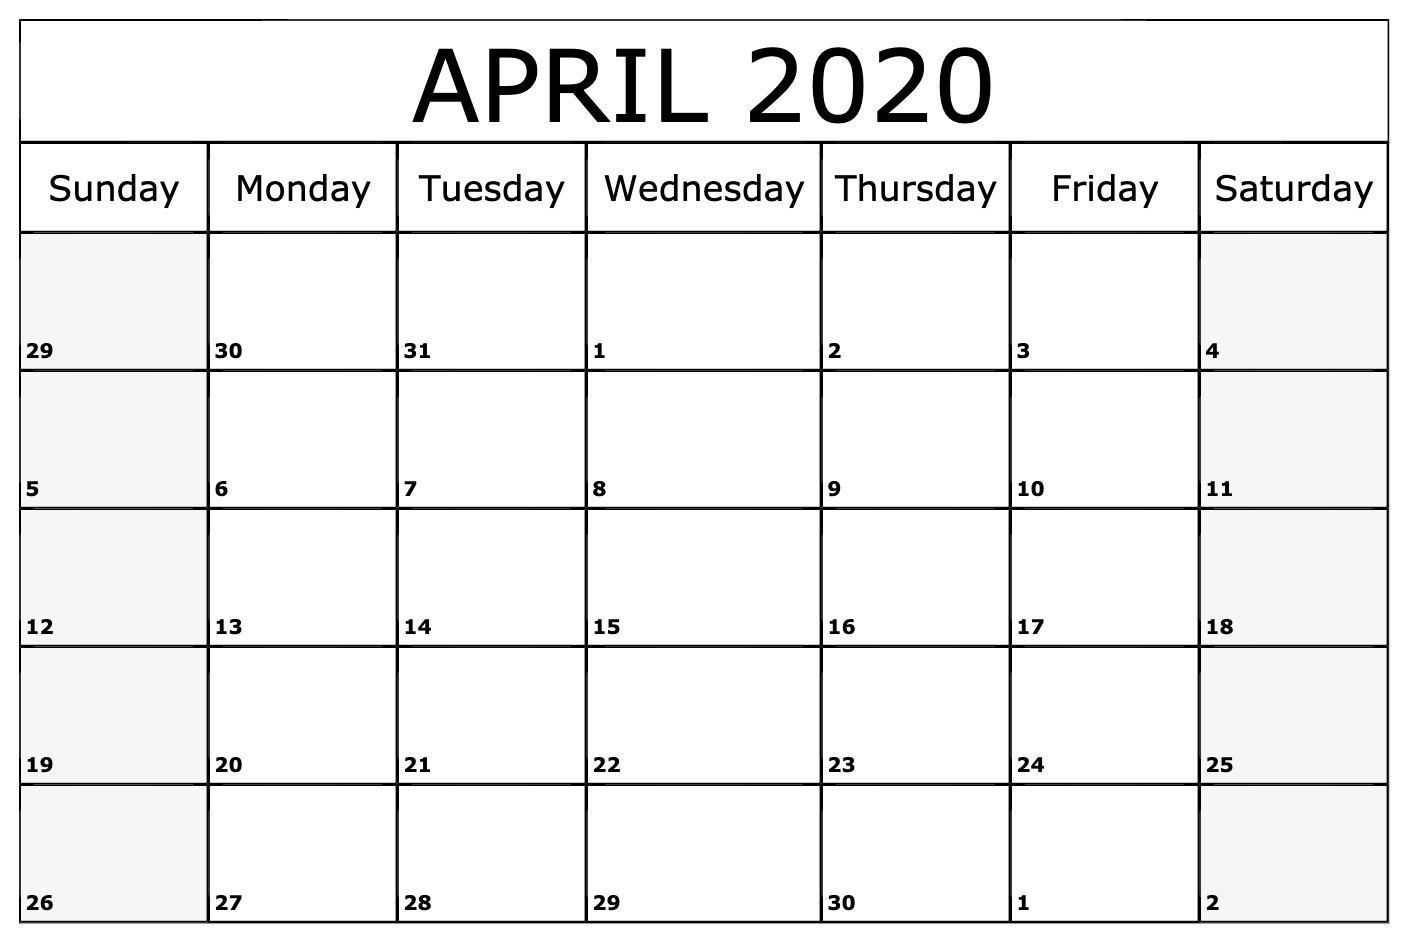 Fillable April 2020 Calendar Template Blank